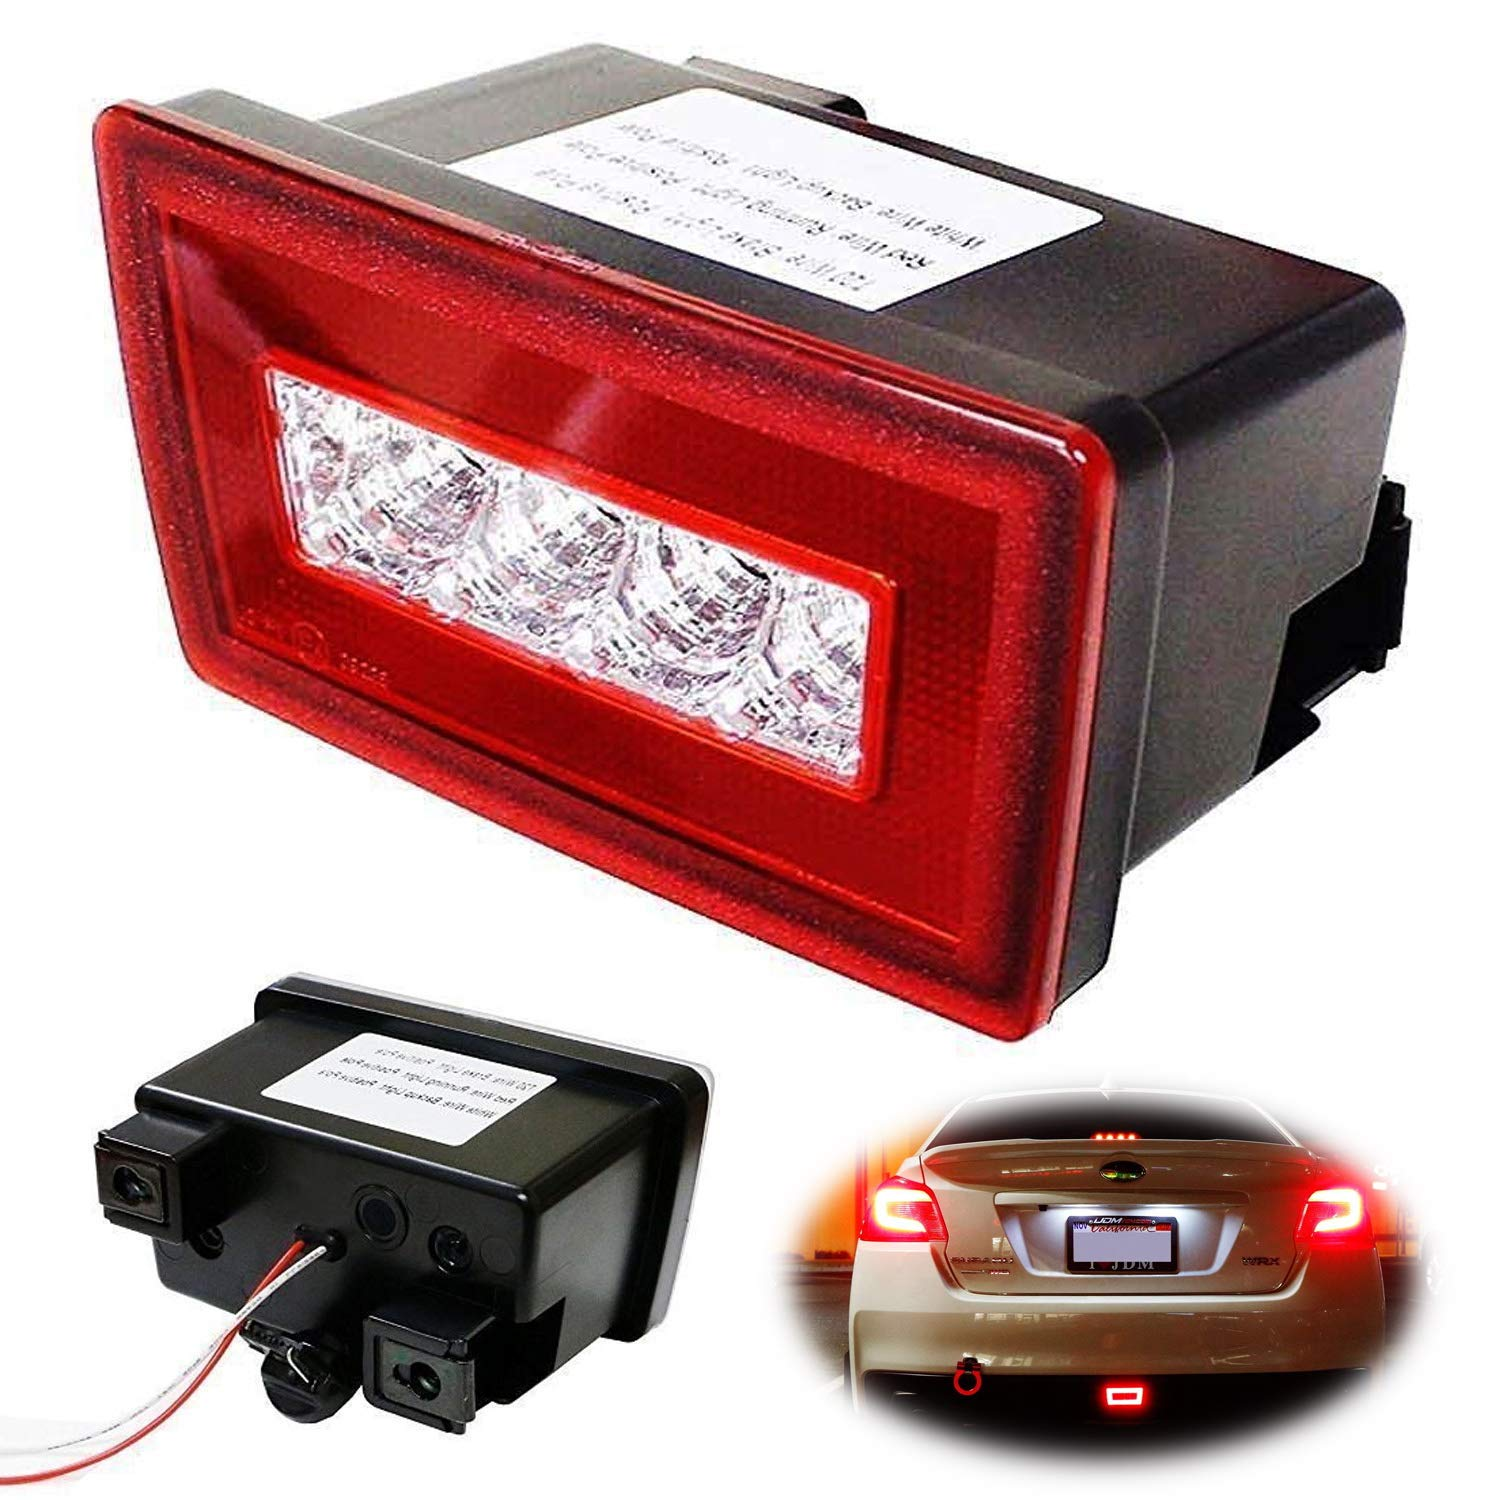 ... Red Lens 3-In-1 LED Rear Fog Light Kit For 11-up Subaru Impreza  WRX/STi, Functions as Tail Lamp, Brake Lamp, Backup Reverse Light (Includes Wire  Harness ...